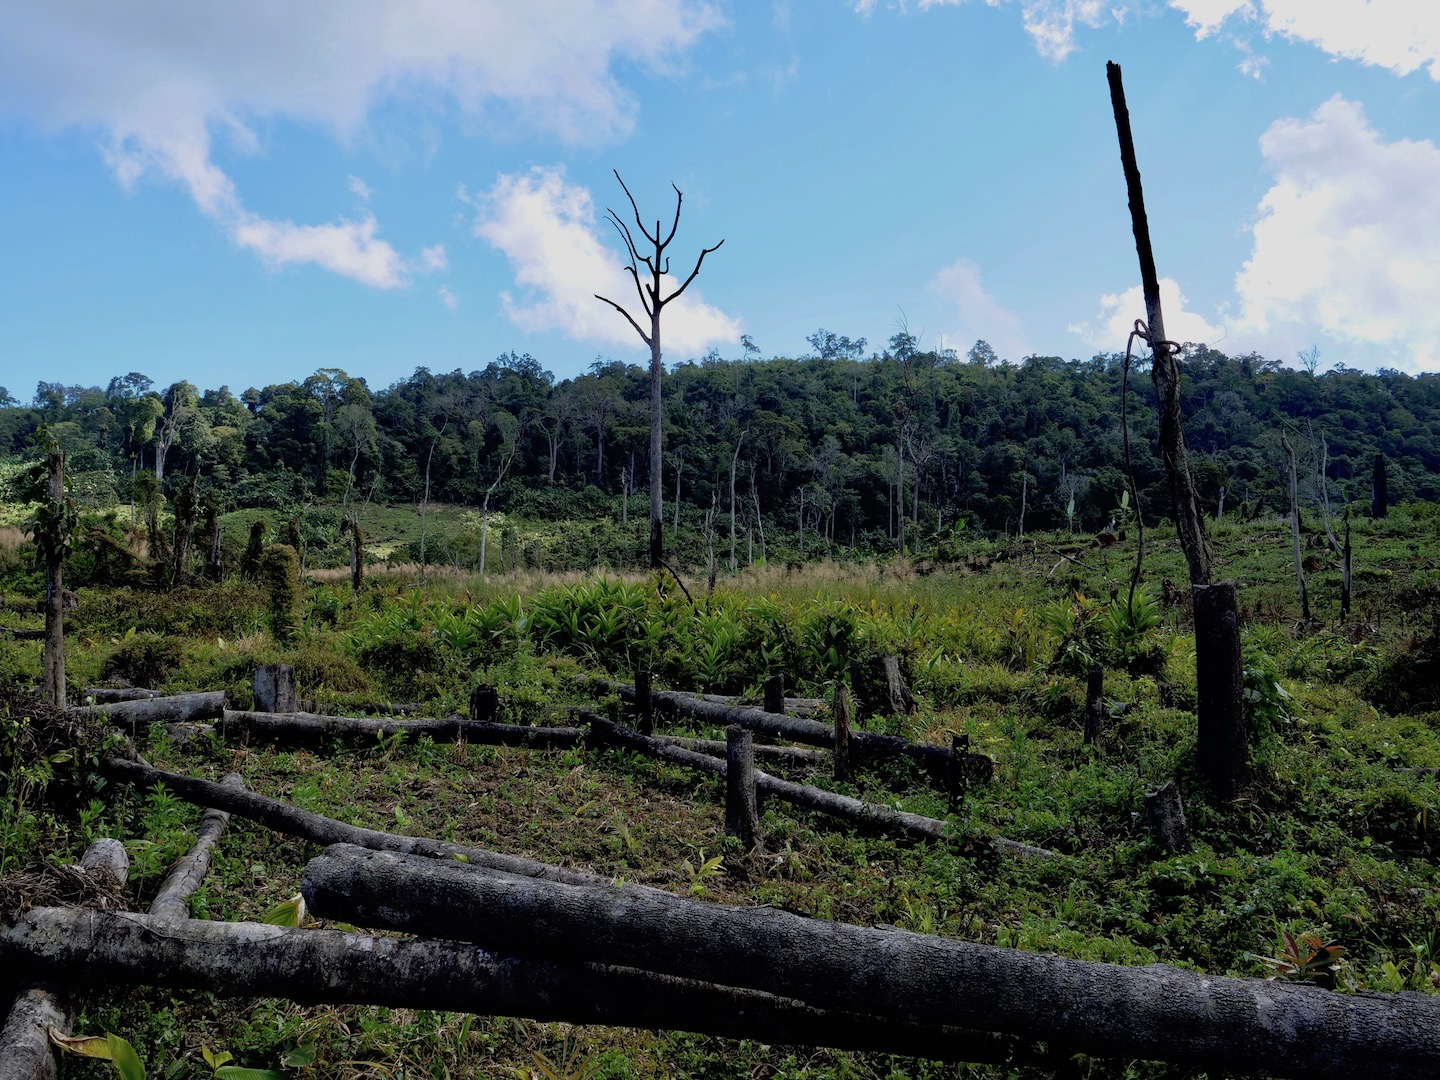 Clearing Trees to Prepare the Land